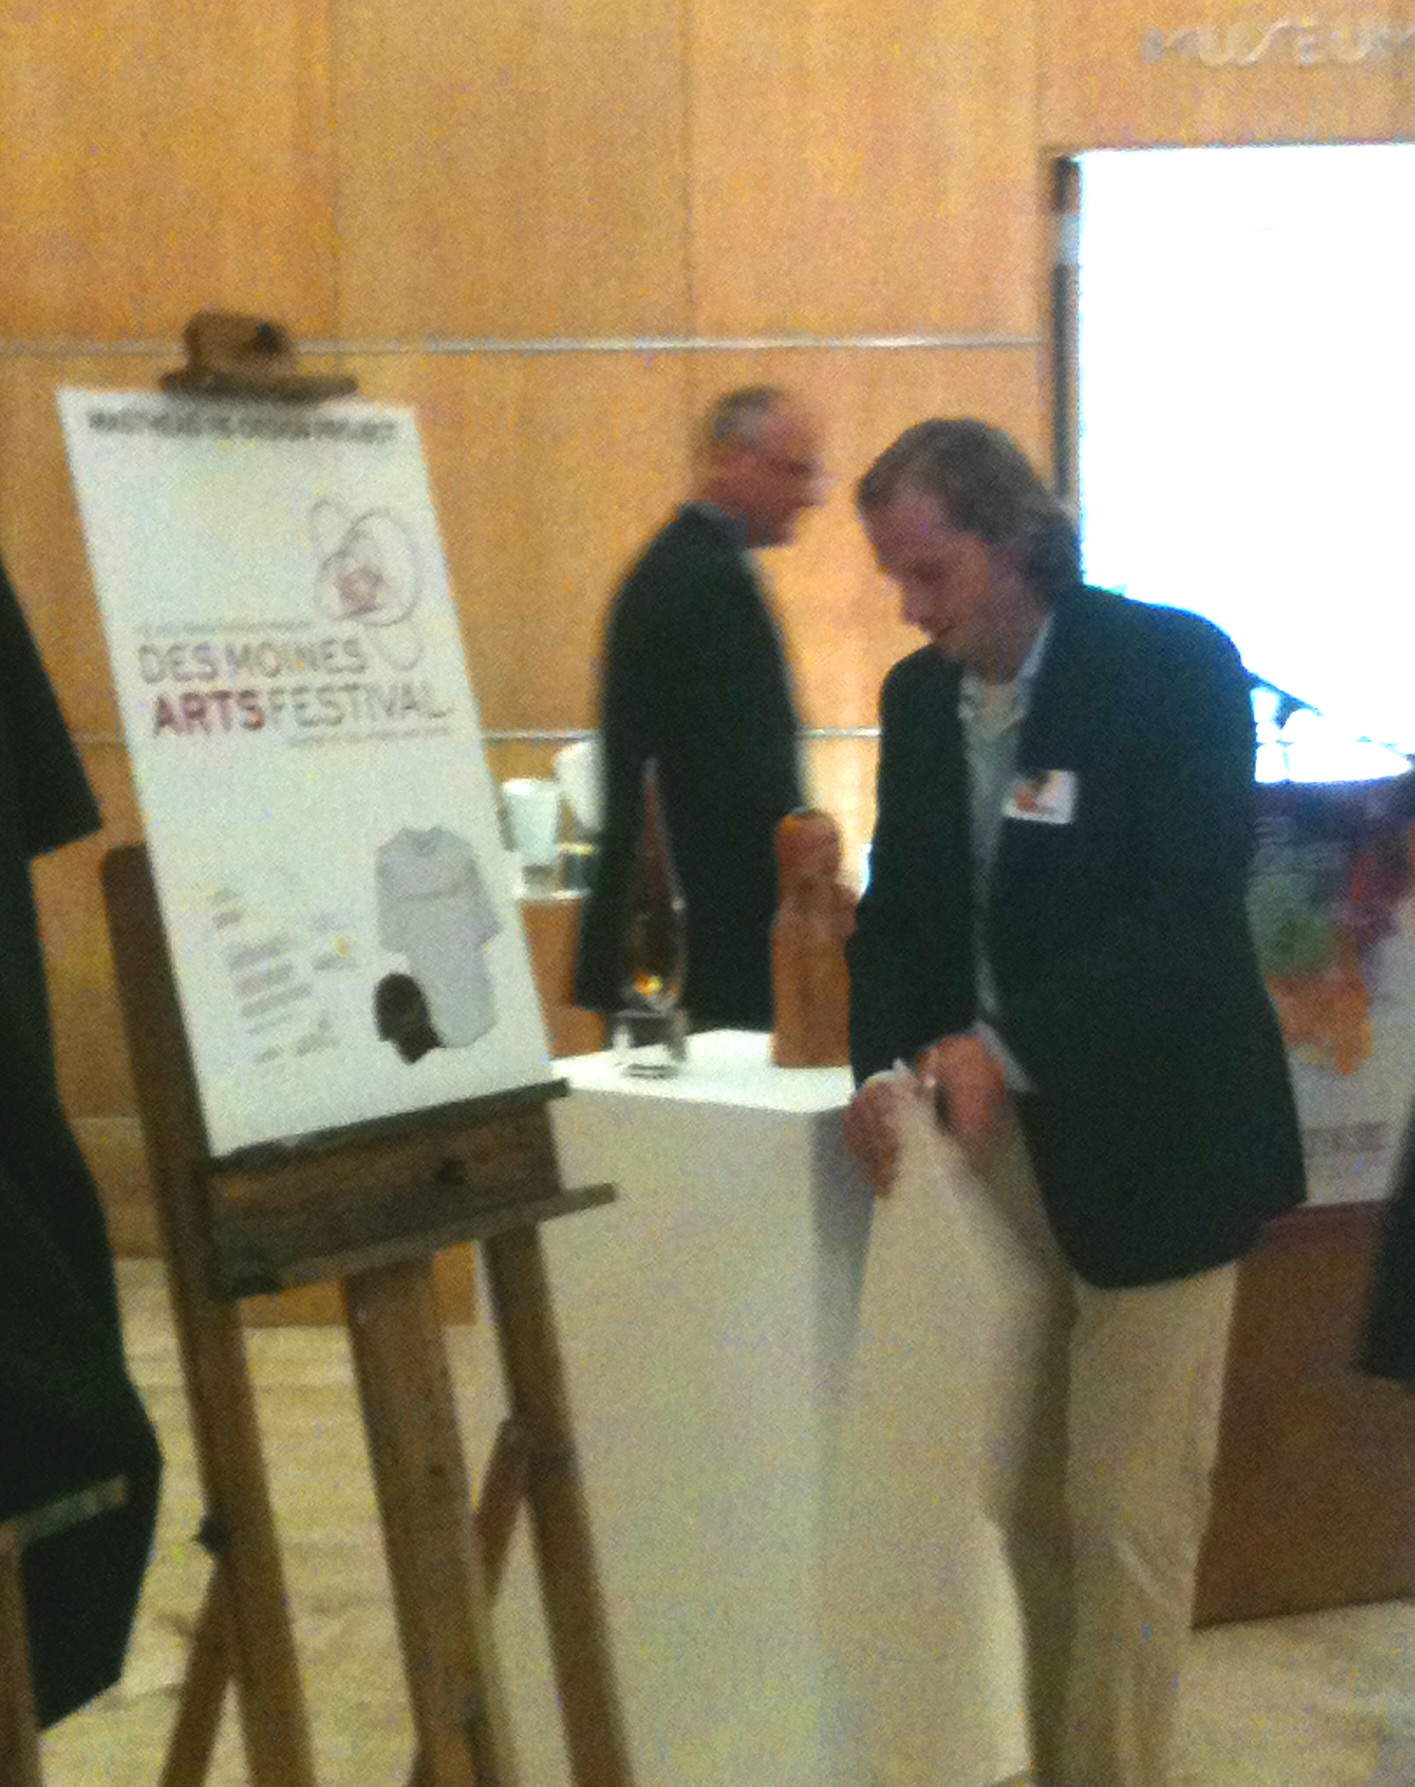 Spindustry's Howard Tempero revealing the new Des Moines Arts Festival r logo design at the Des Moines Art Center.